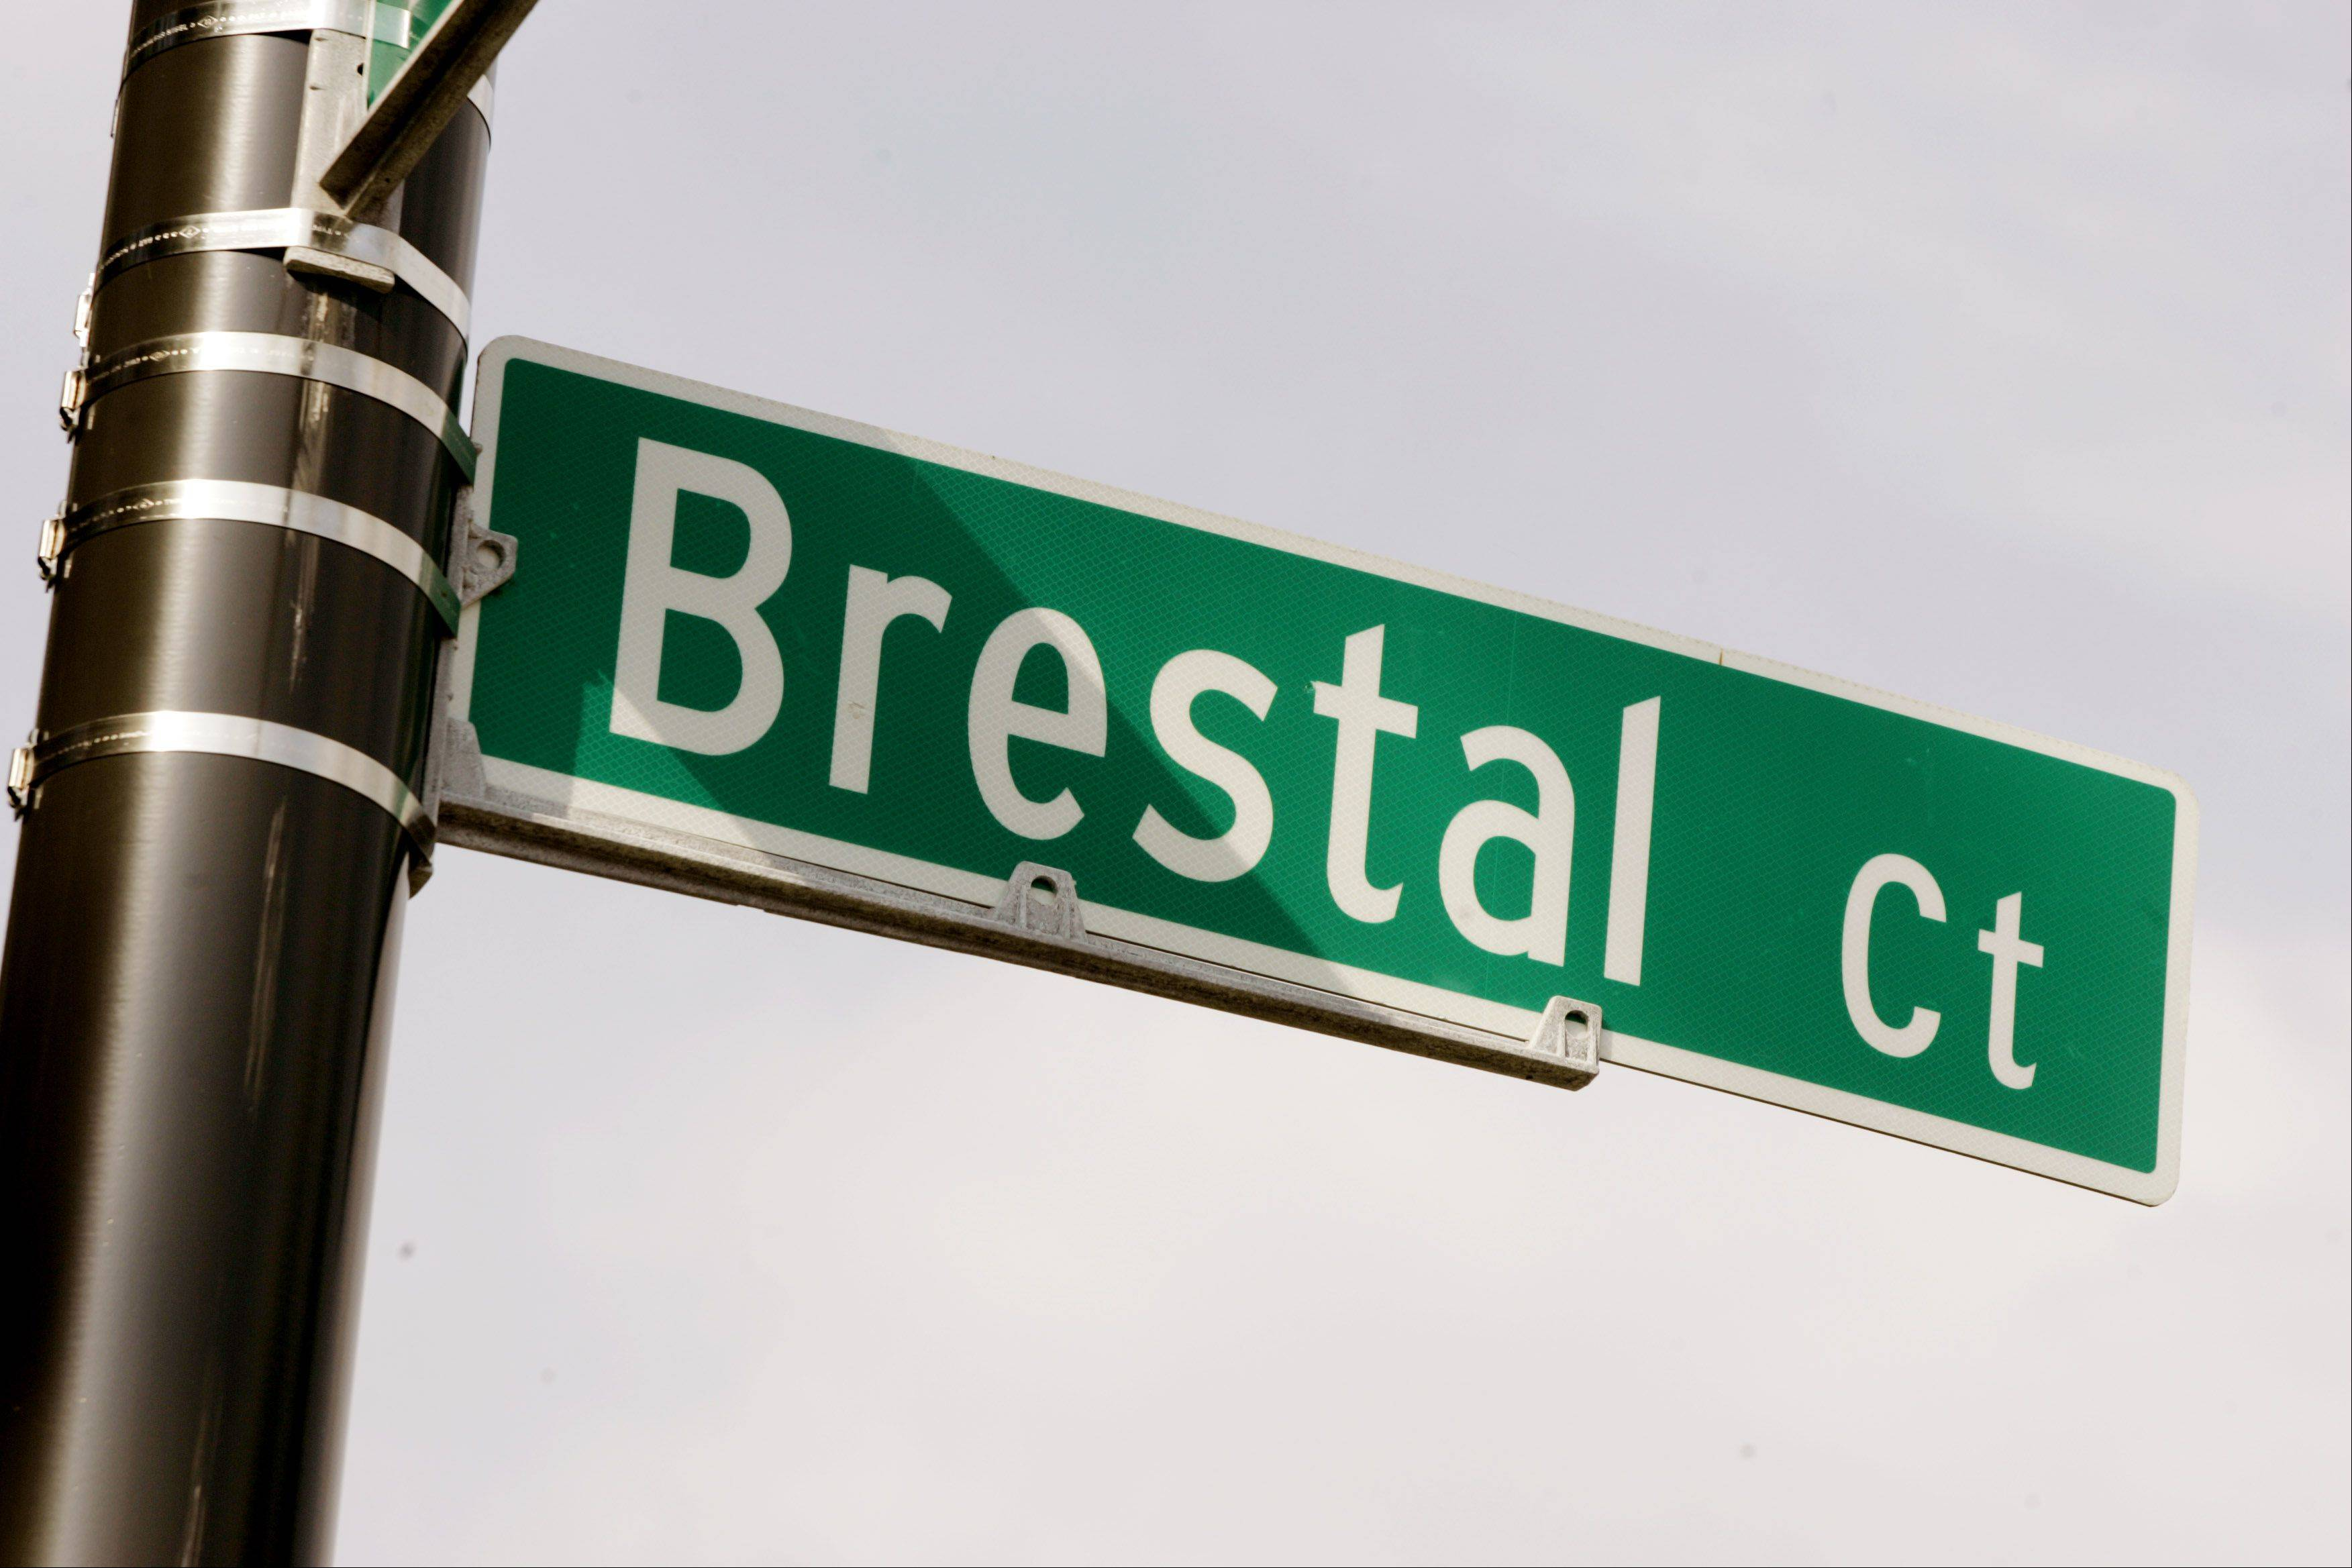 Embattled attorney Bill Brestal has a street named after him in Naperville.